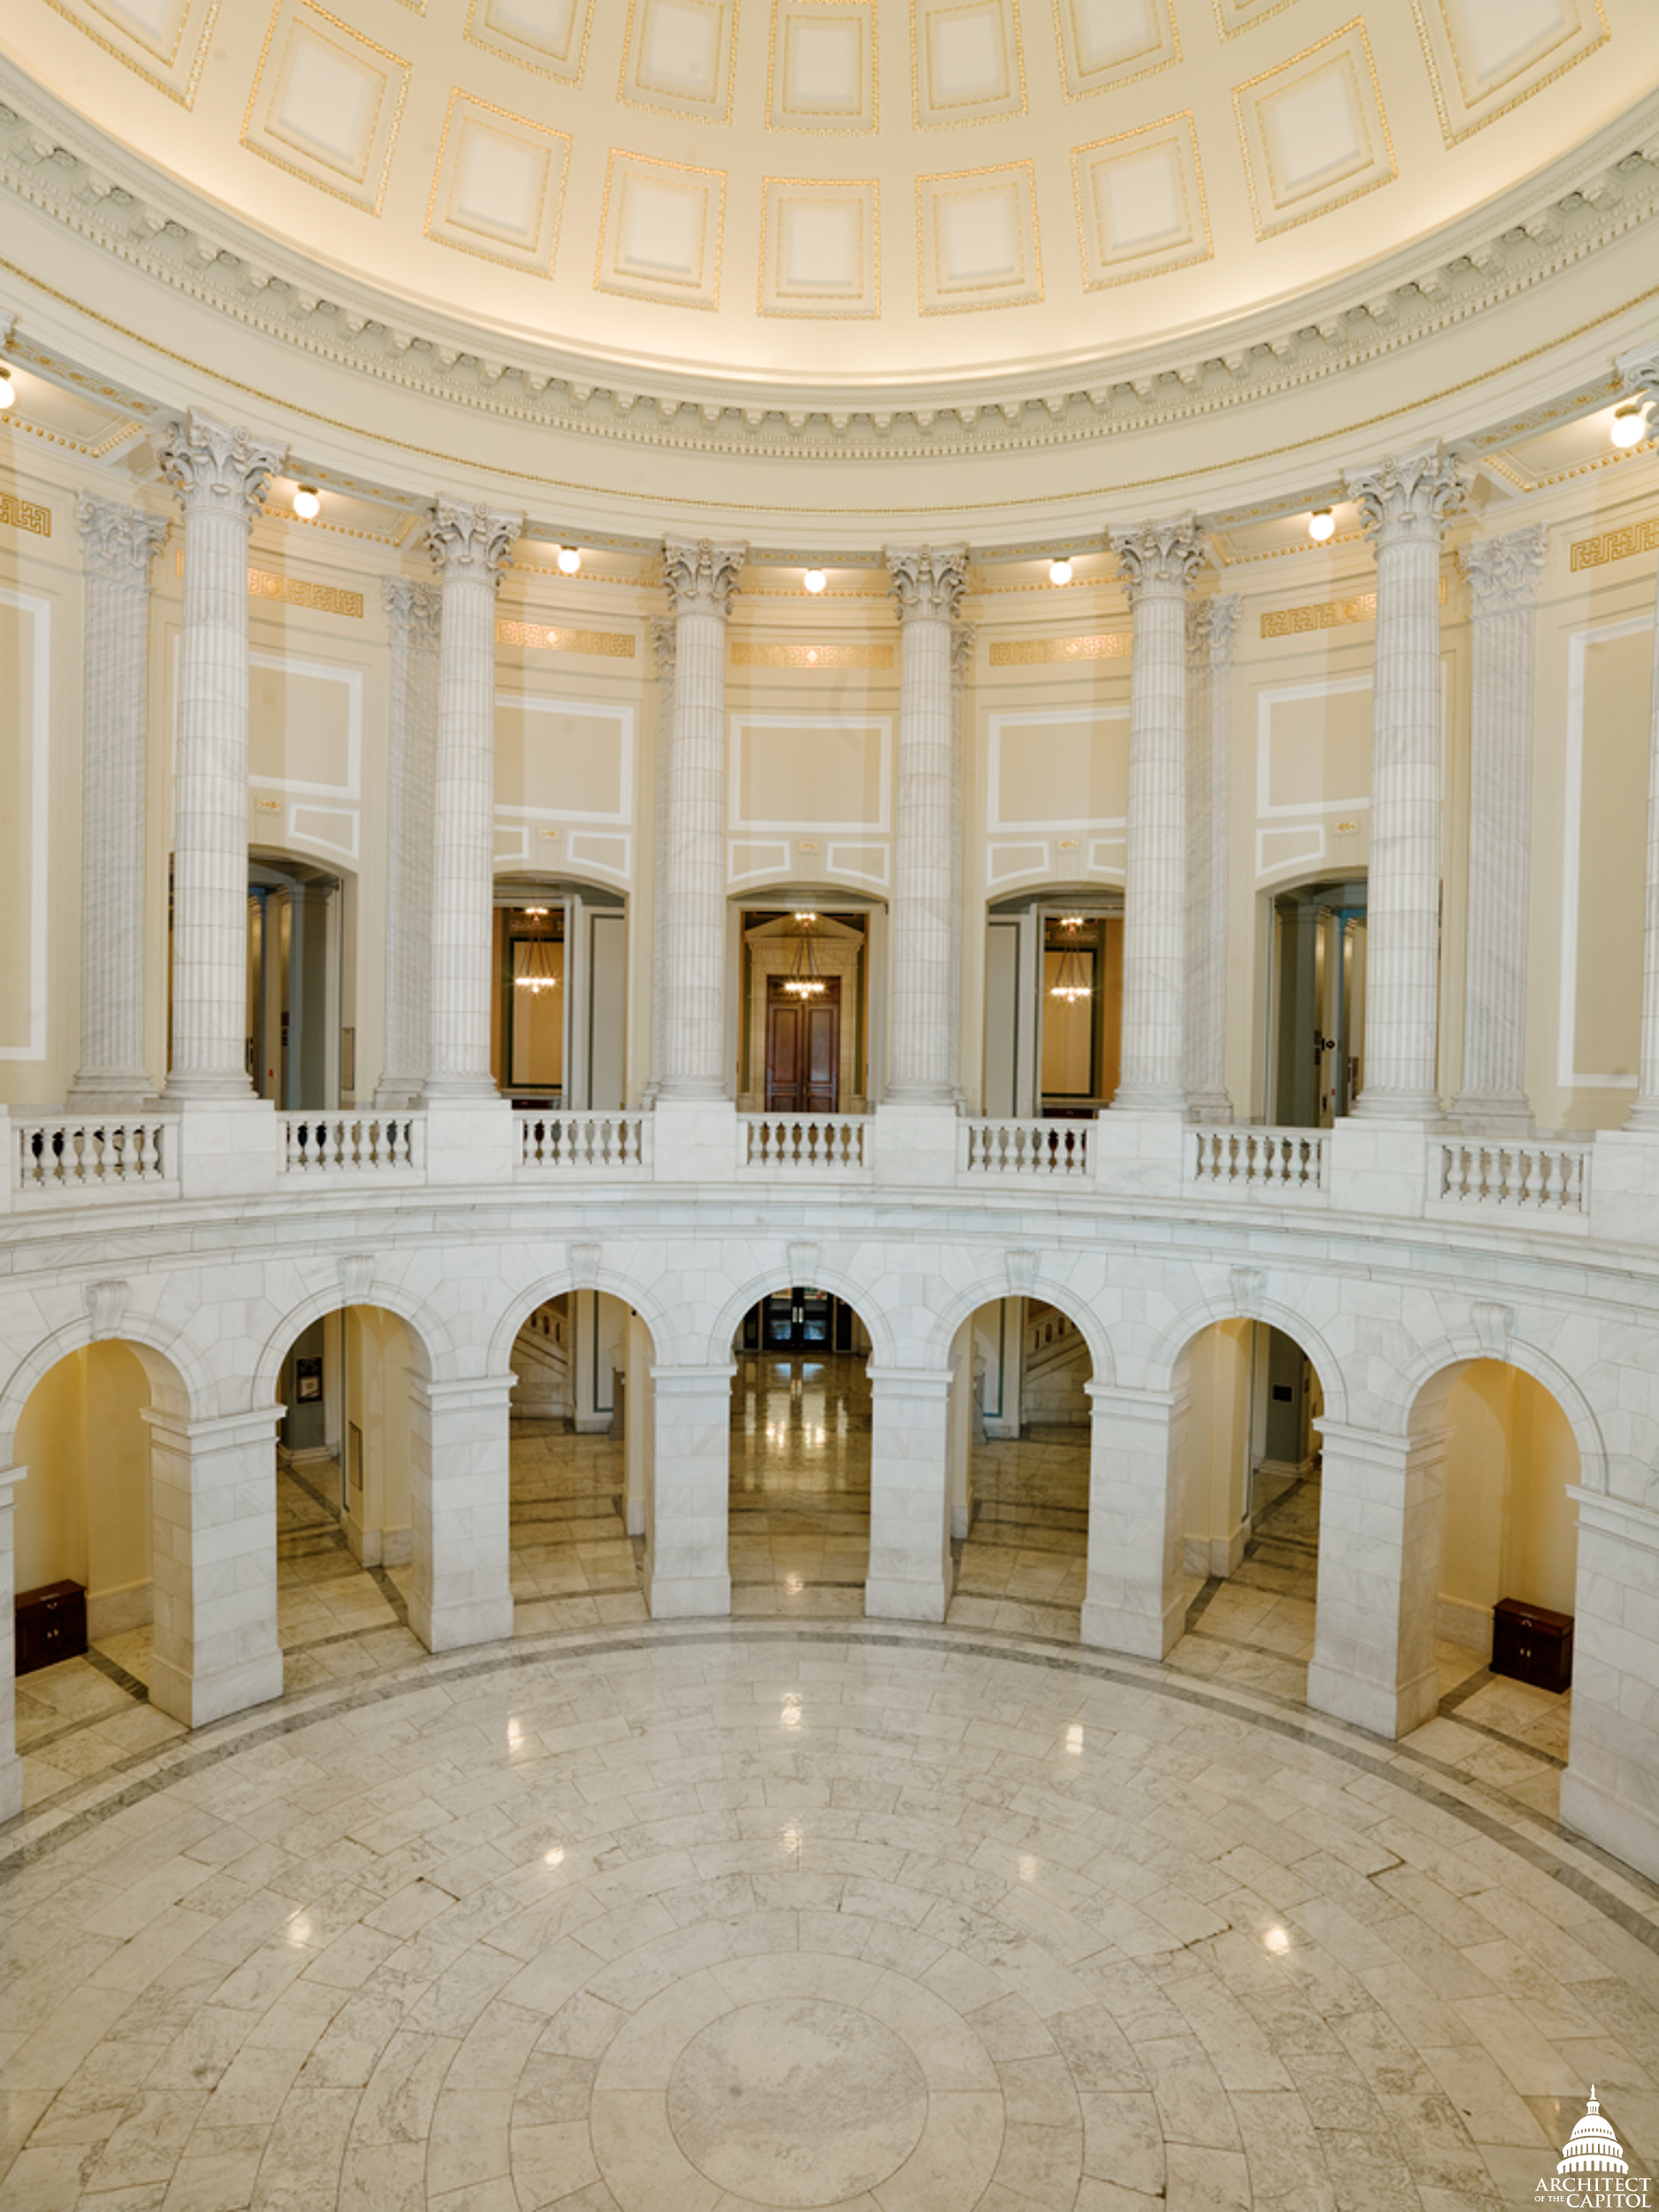 Photo of the Cannon Building rotunda.